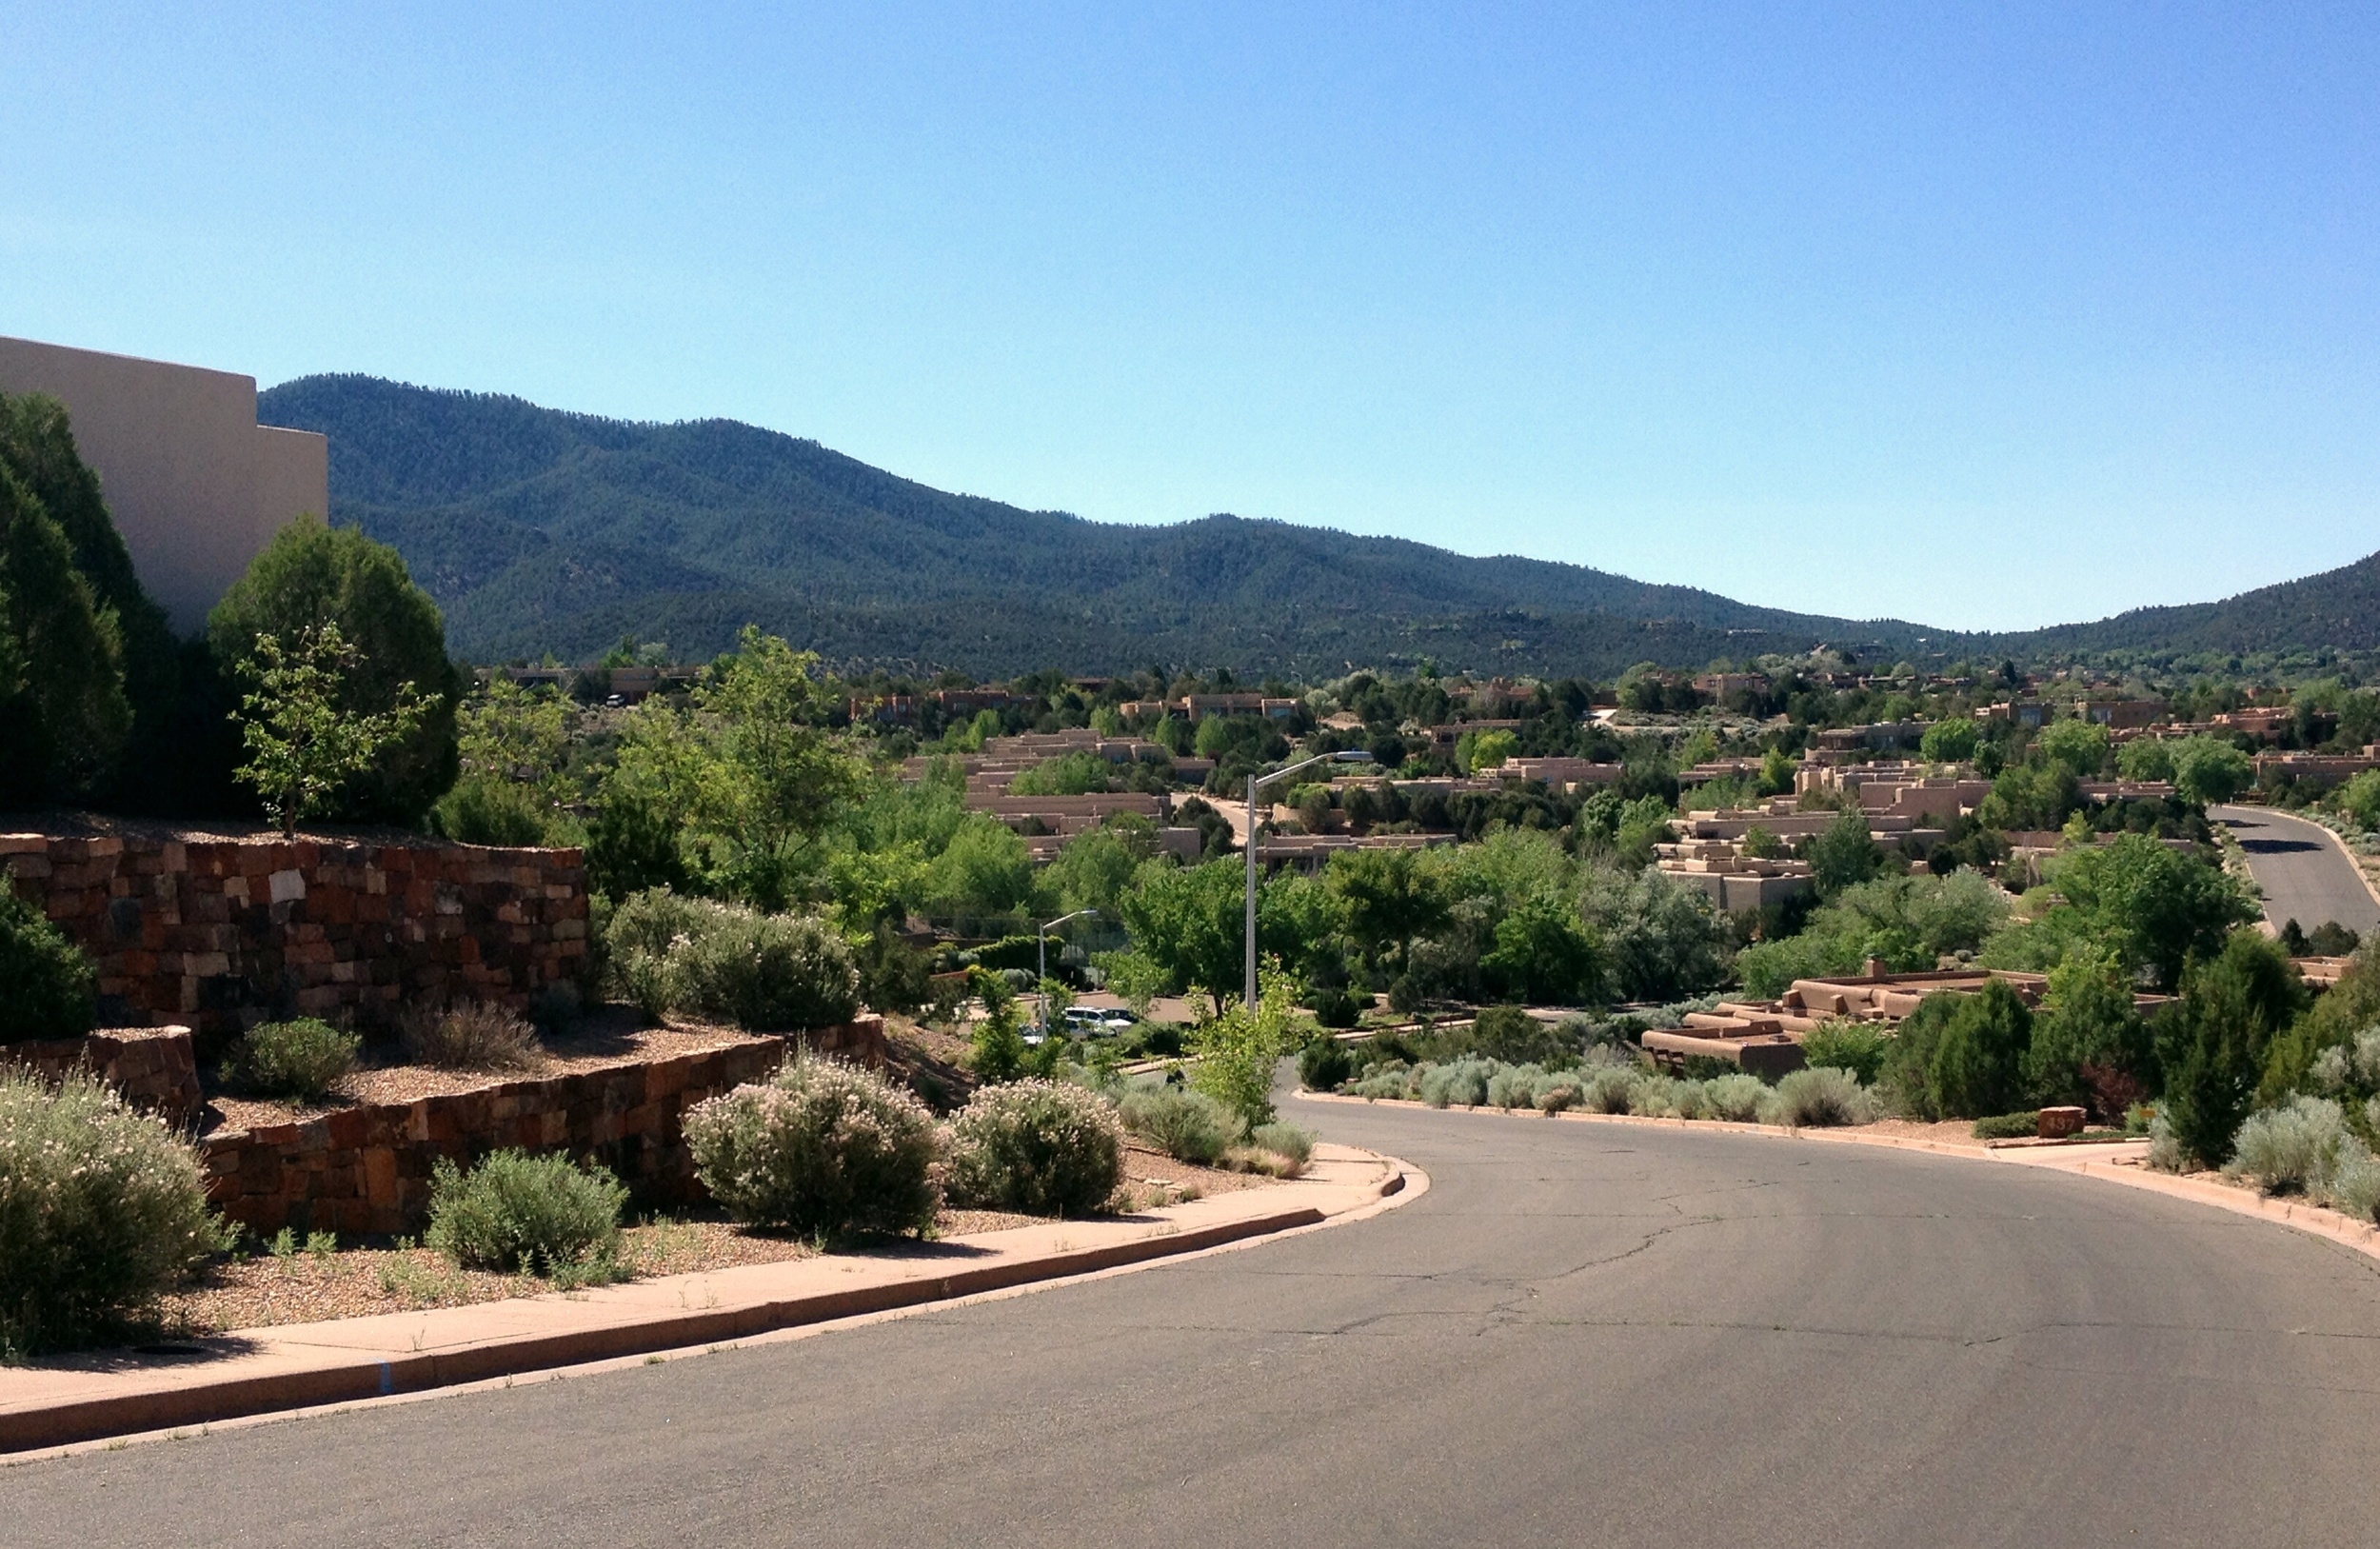 This was taken in a neighborhood on the way to the Santa Fe ski area.